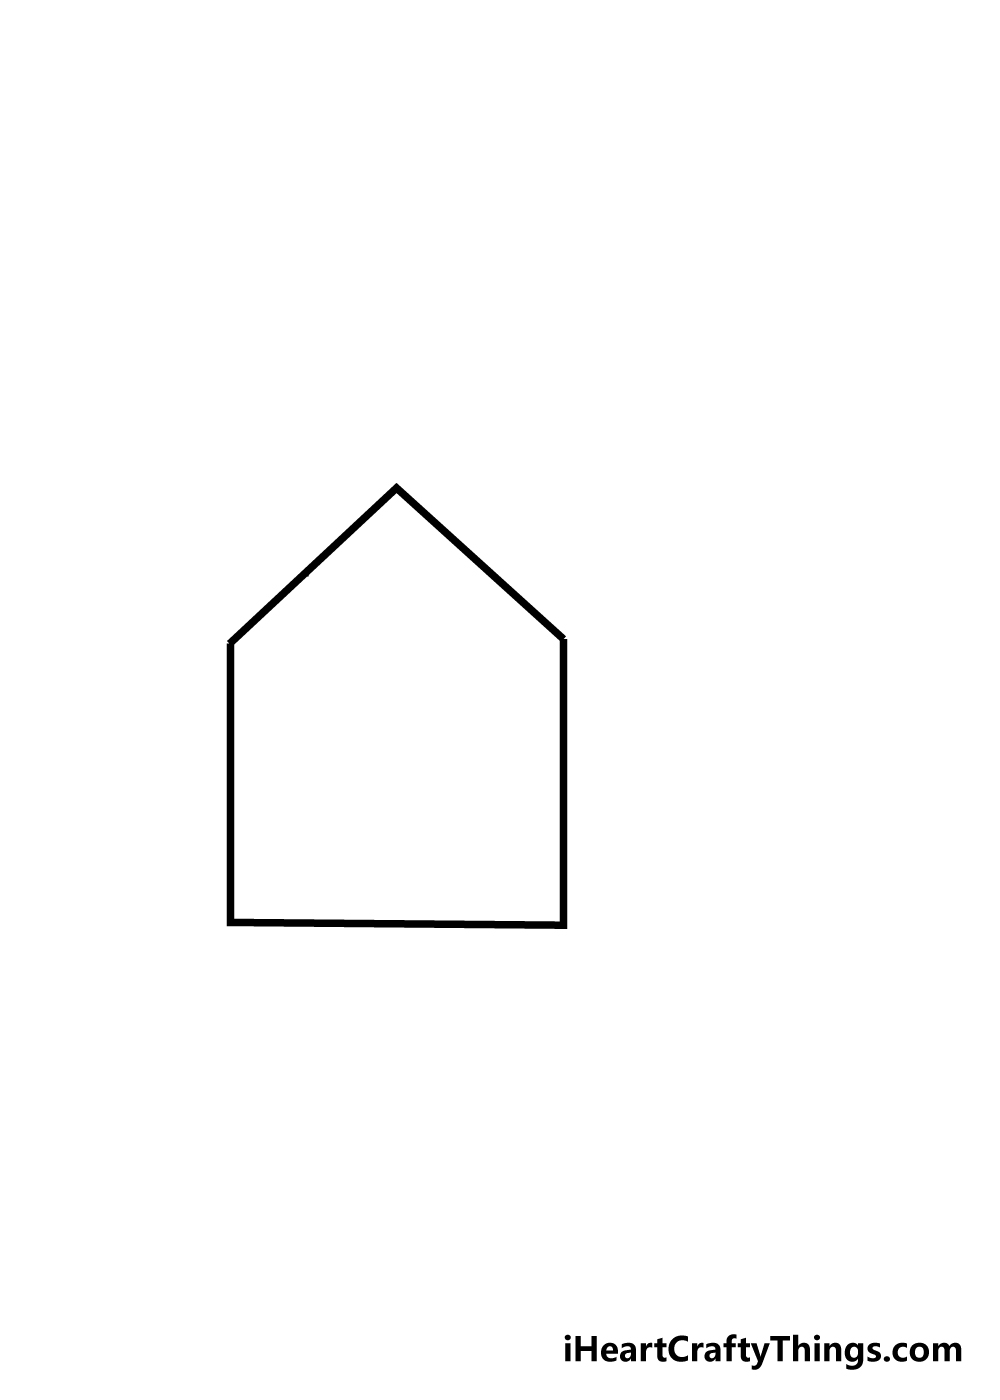 house drawing step 1